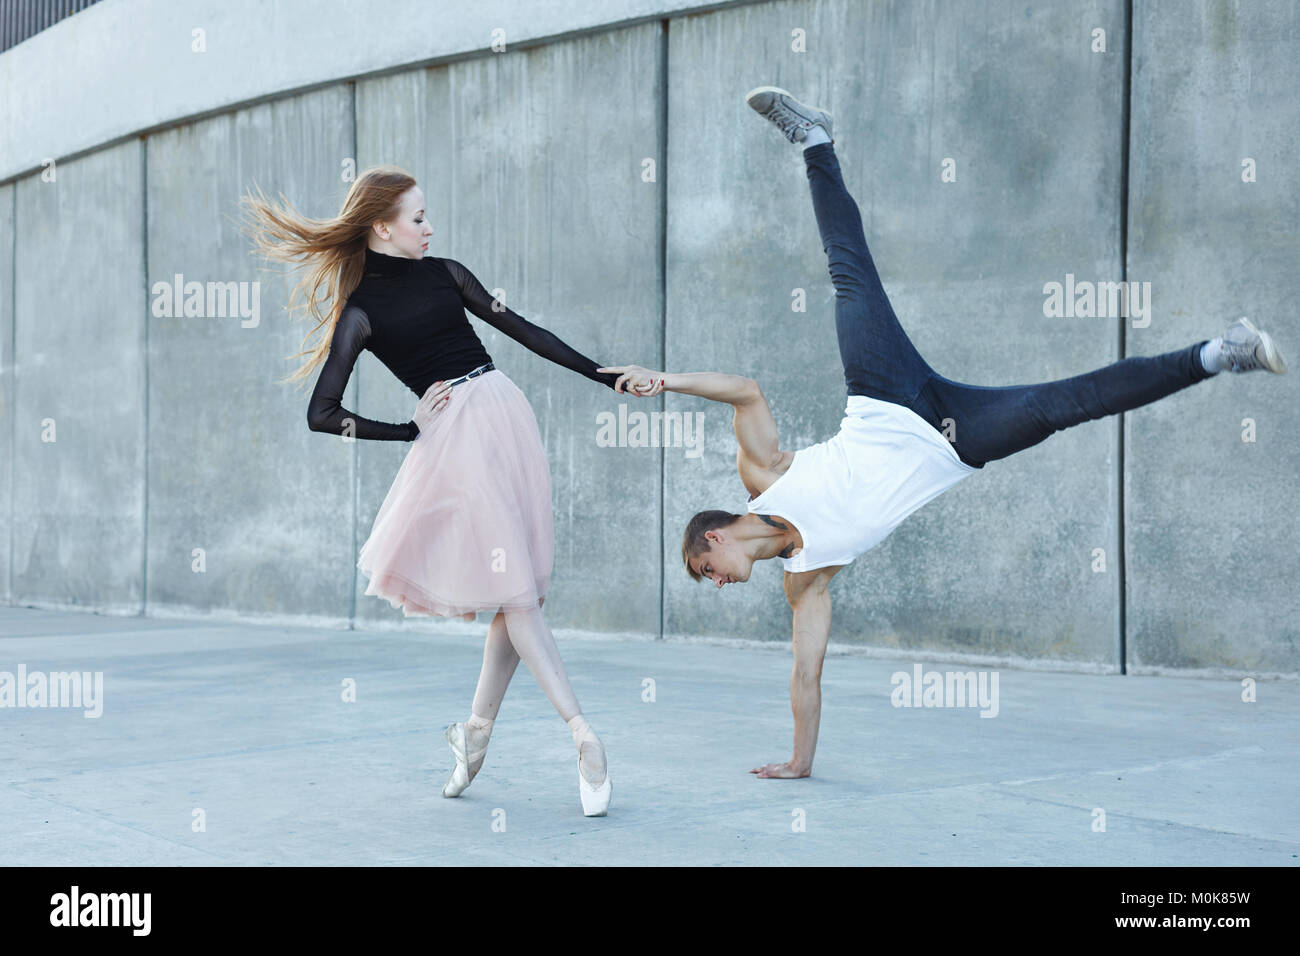 A young couple in love passionately dances on a city street. Dancer and sportsman Parkour. Balance and stunts in Stock Photo